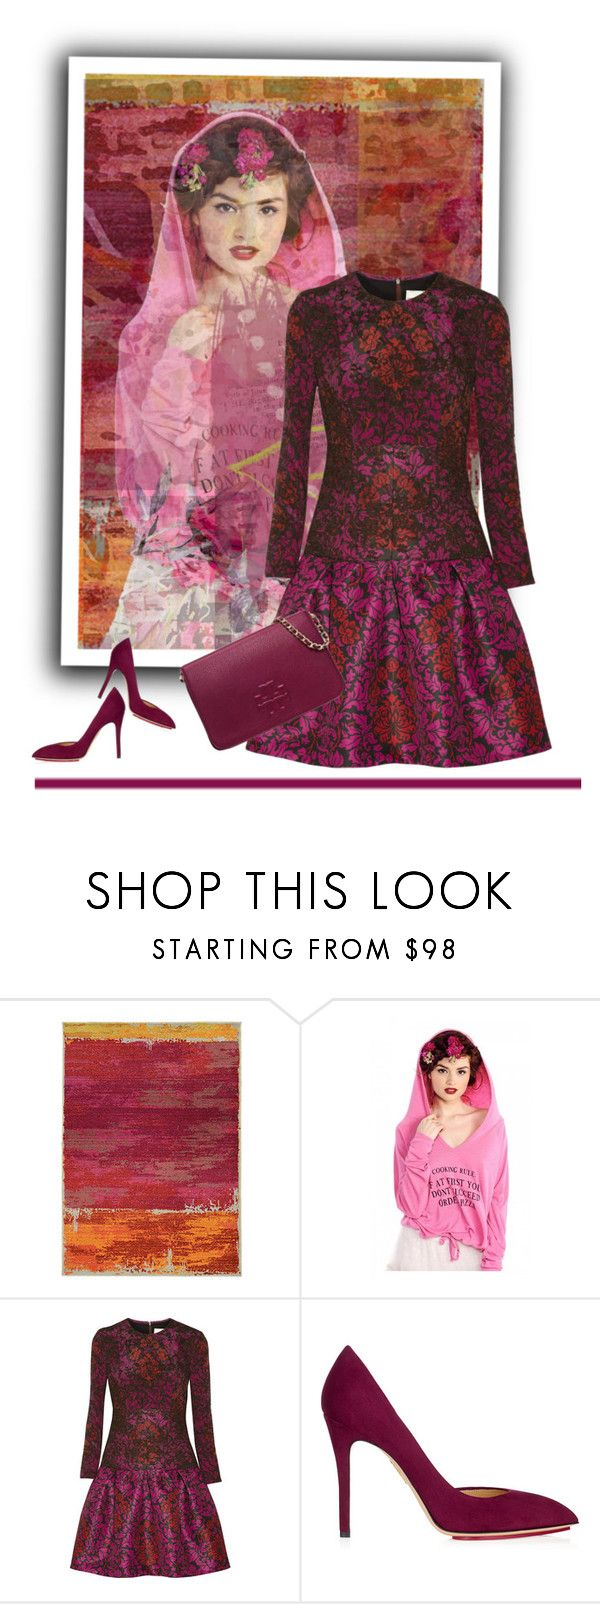 """""""Geen titel #23750"""" by lizmuller ❤ liked on Polyvore featuring Pantone Universe, Wildfox, Mary Katrantzou, Charlotte Olympia and Tory Burch"""